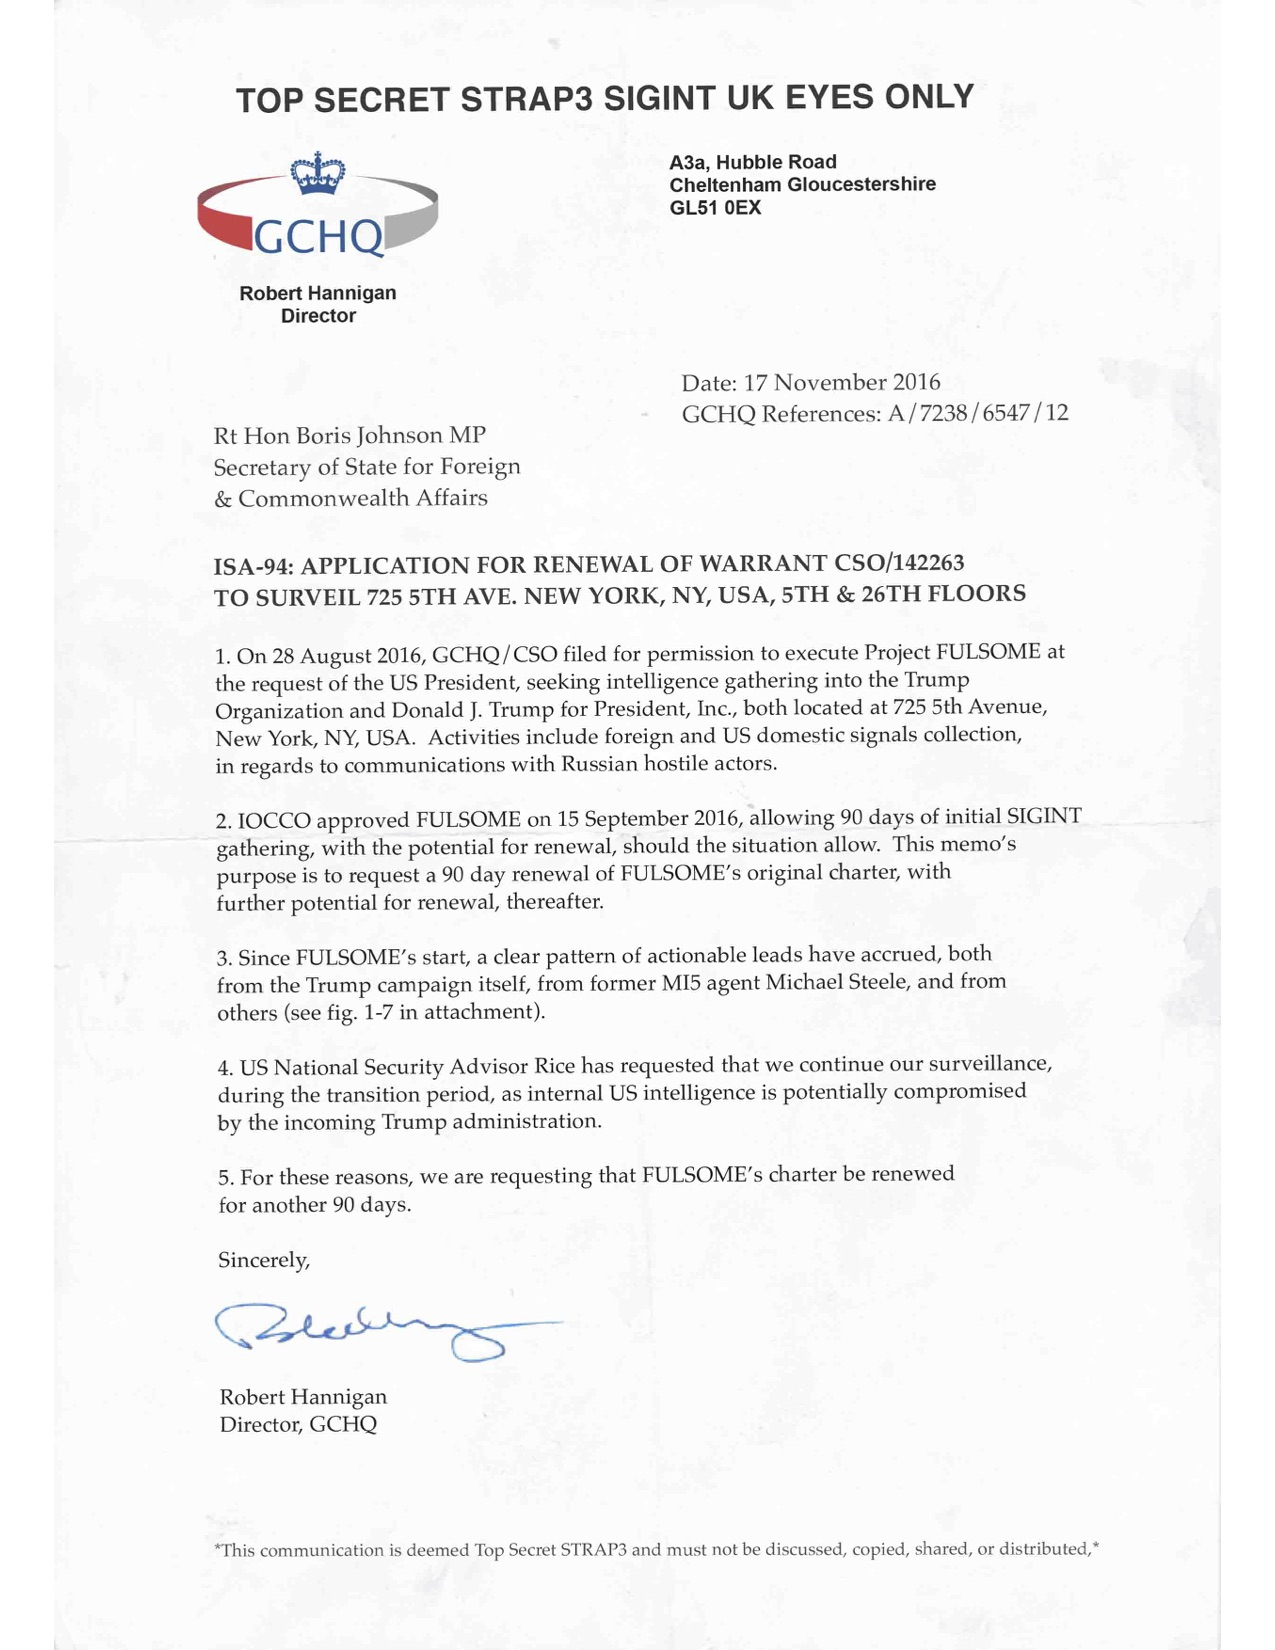 The Letter Discusses Project FULSOME, A Name Given To The Obama Operation  Of Using British Intelligence At GCHQ To Spy On Donald Trump.